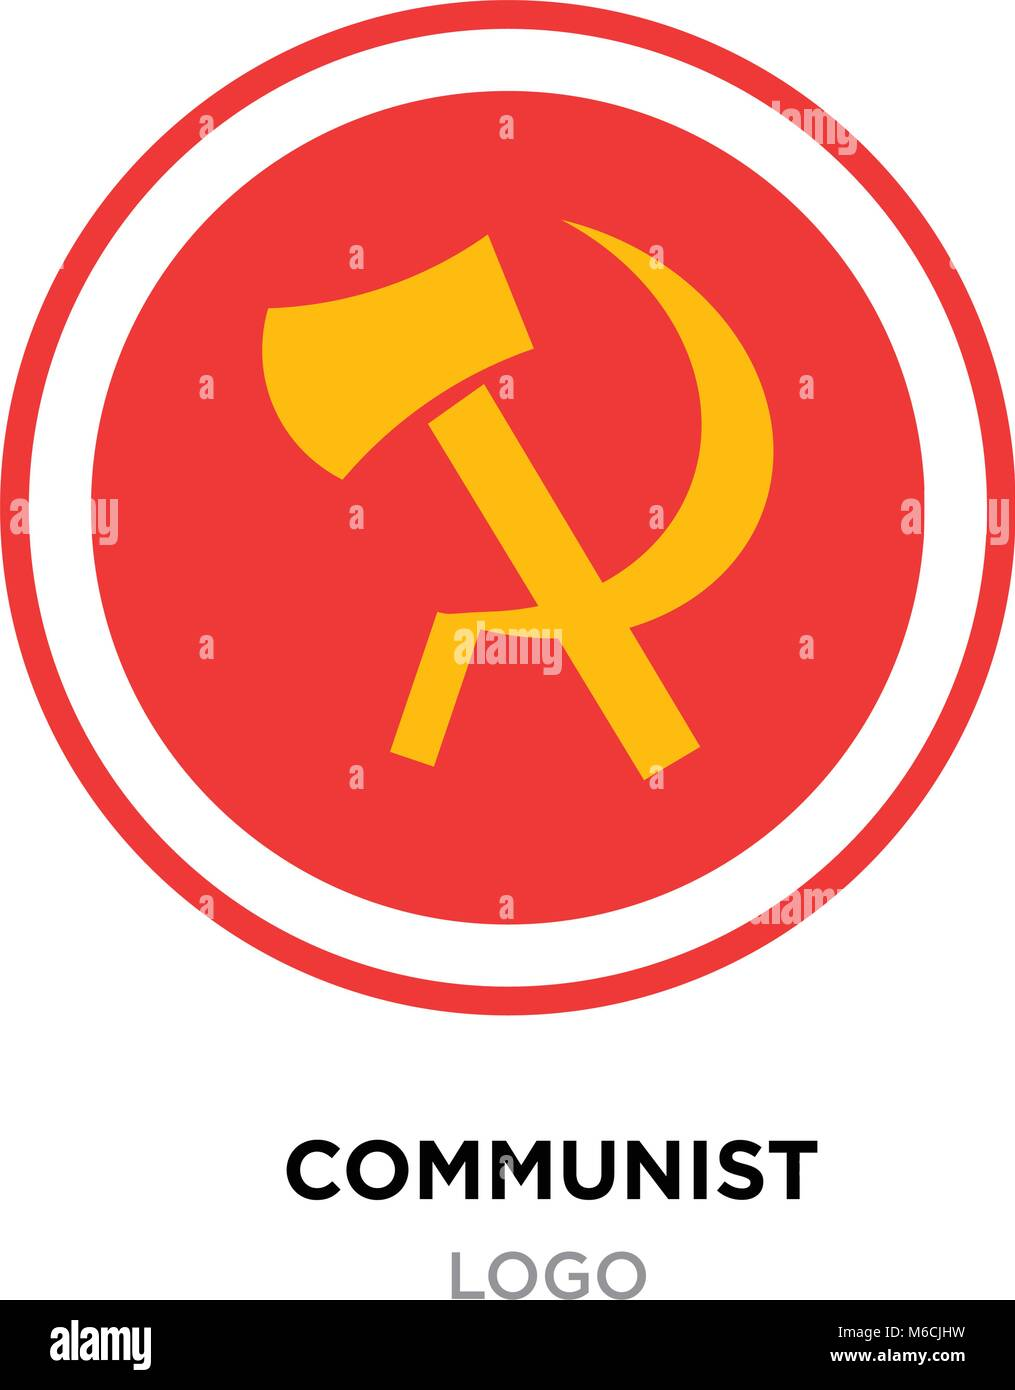 Symbol for socialism image collections symbol and sign ideas communist logoussr communism icon with yellow hammer and sickle communist logoussr communism icon with yellow hammer biocorpaavc Gallery